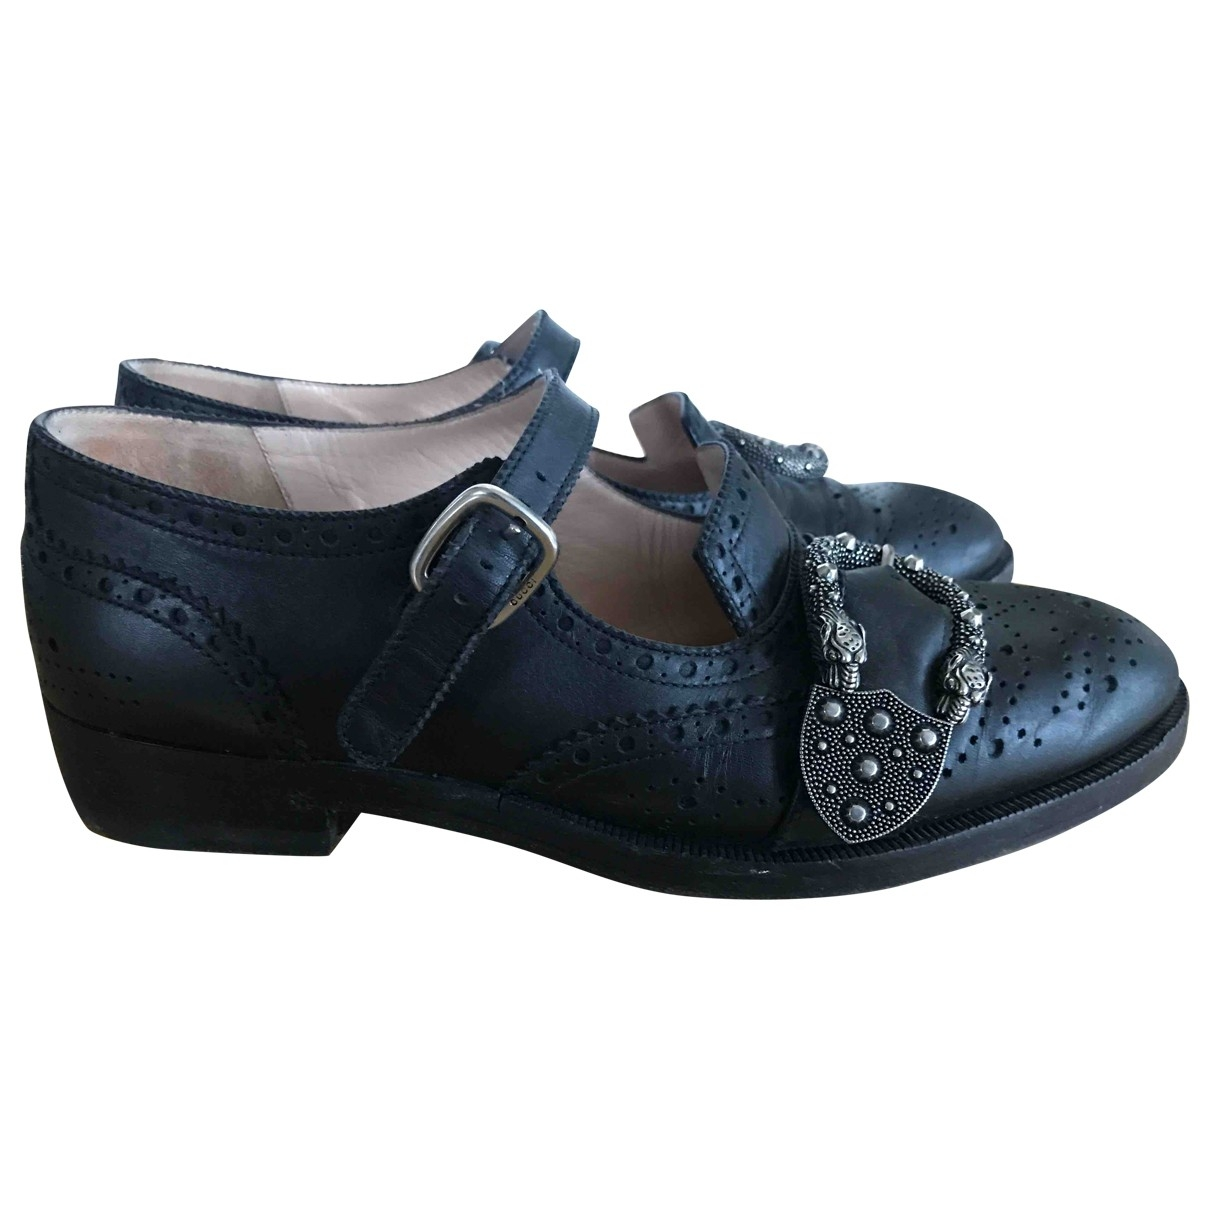 Gucci Queercore Black Leather Flats for Women 38.5 EU